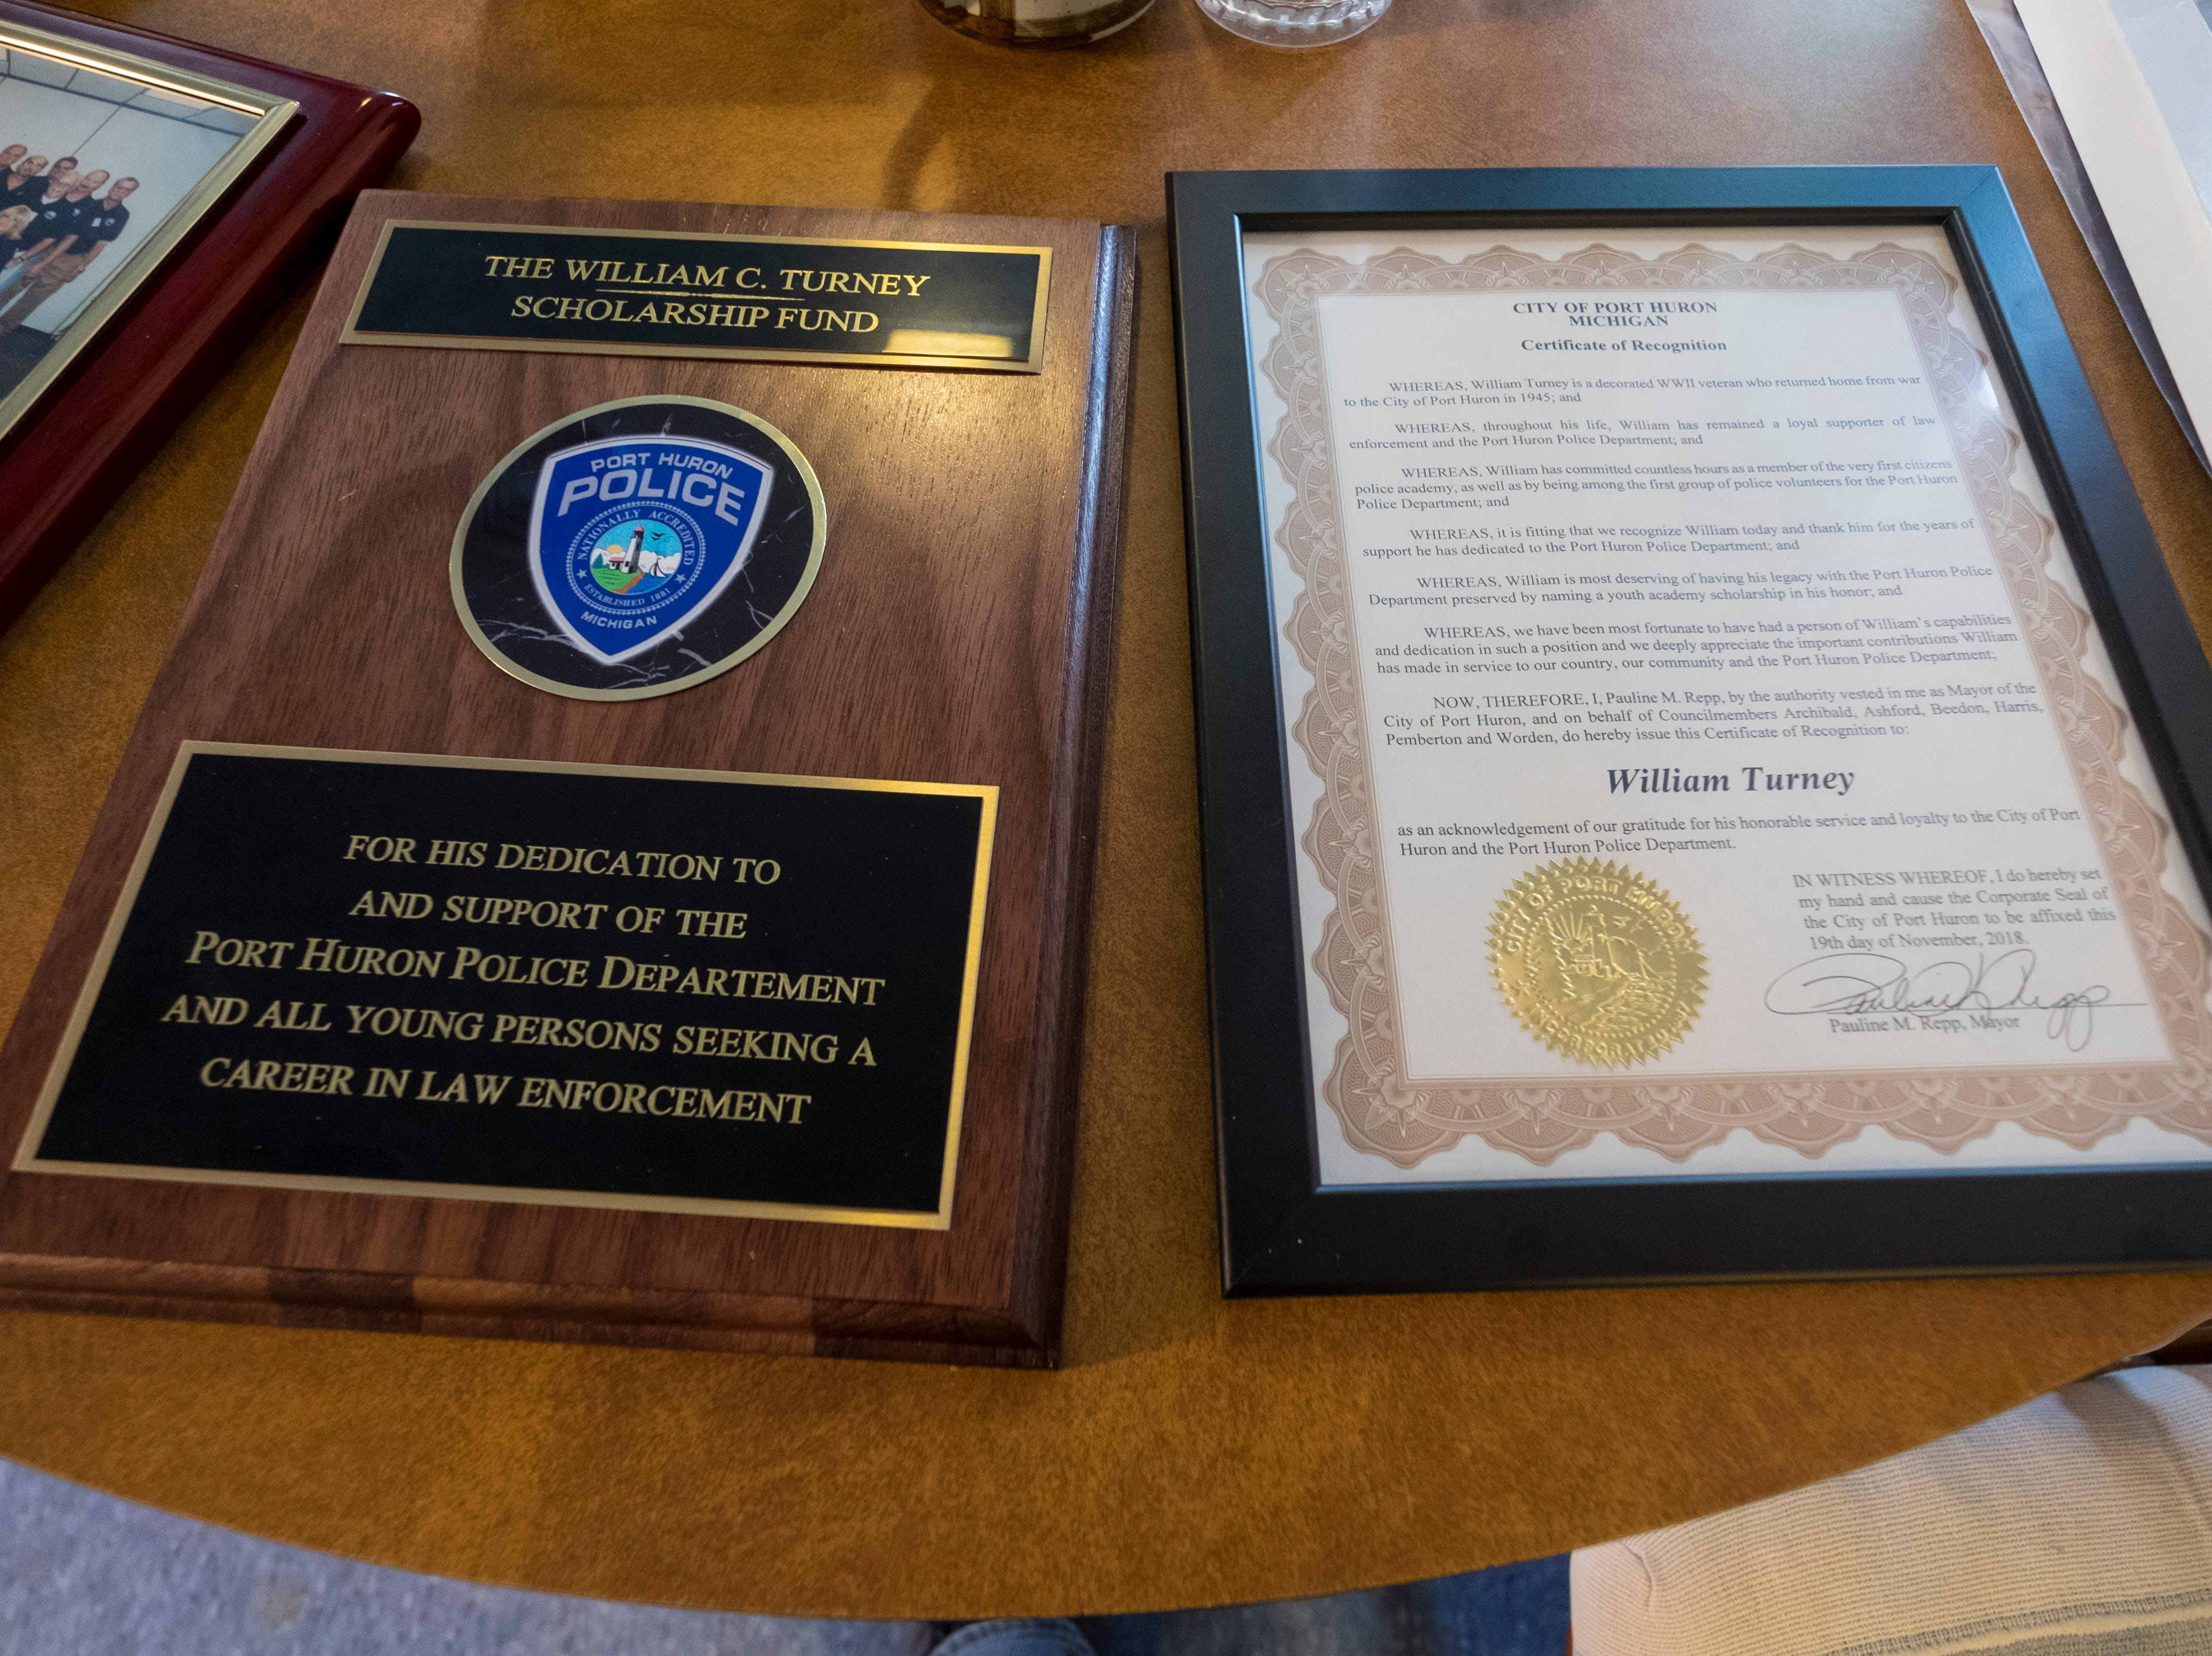 A plaque by the Port Huron Police Department and a certificate of recognition for William Turney sit on a table after being presented to Turney. The department's William Turney Scholarship Fund will award $500 toward law enforcement education to students who attend the Youth Police Academy.